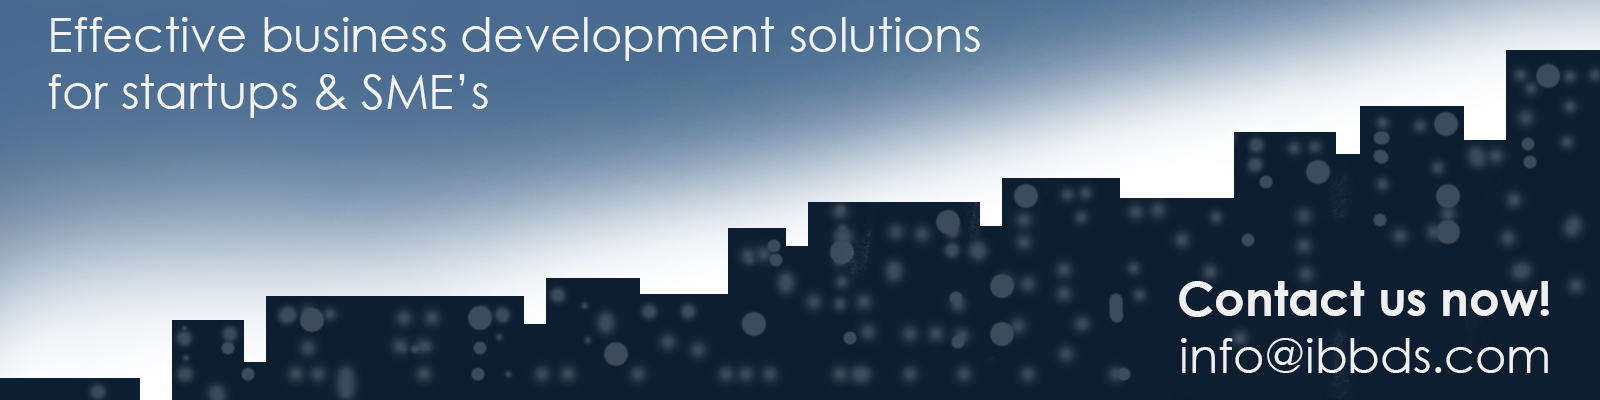 ibbds Effective business development solutions for startups and SME's